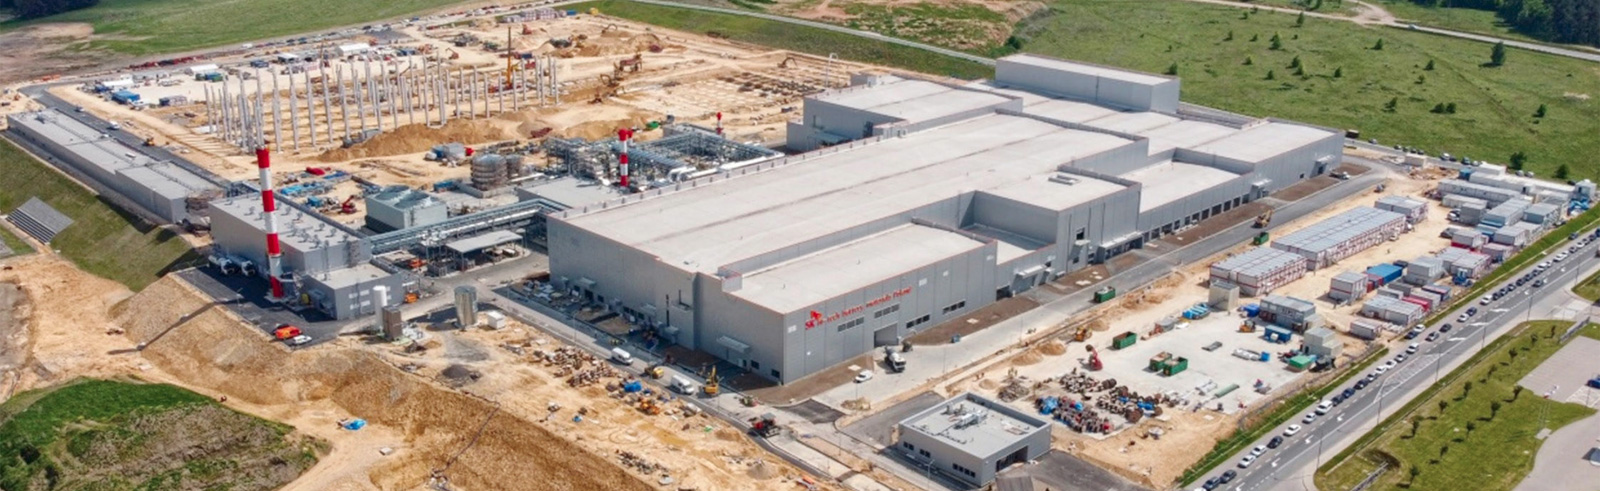 SK IE Technology fully operates a lithium-ion battery separator plant in Poland